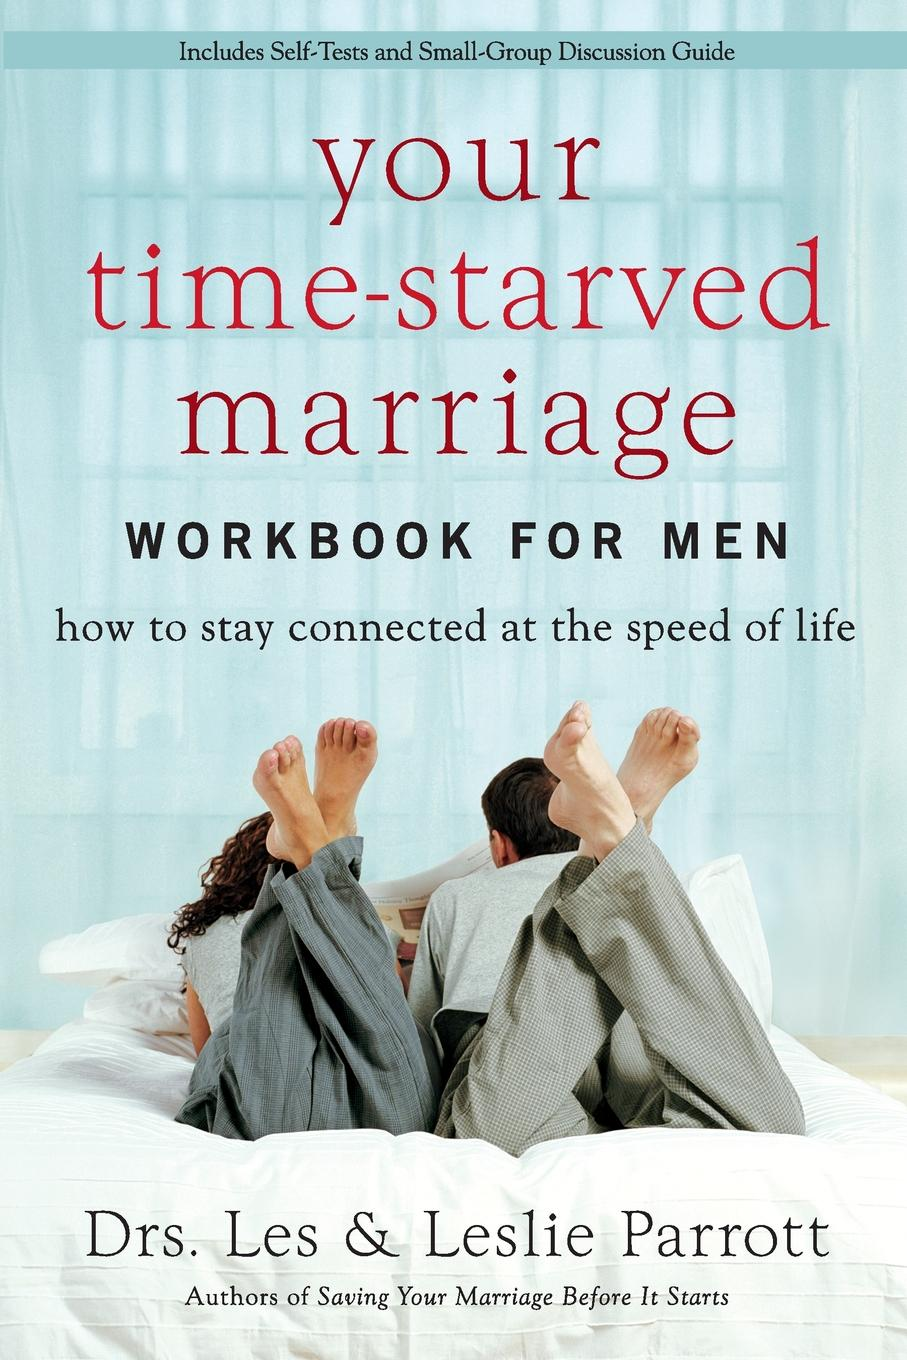 Les and Leslie Parrott Your Time-Starved Marriage Workbook for Men. How to Stay Connected at the Speed of Life gps to a joyful marriage